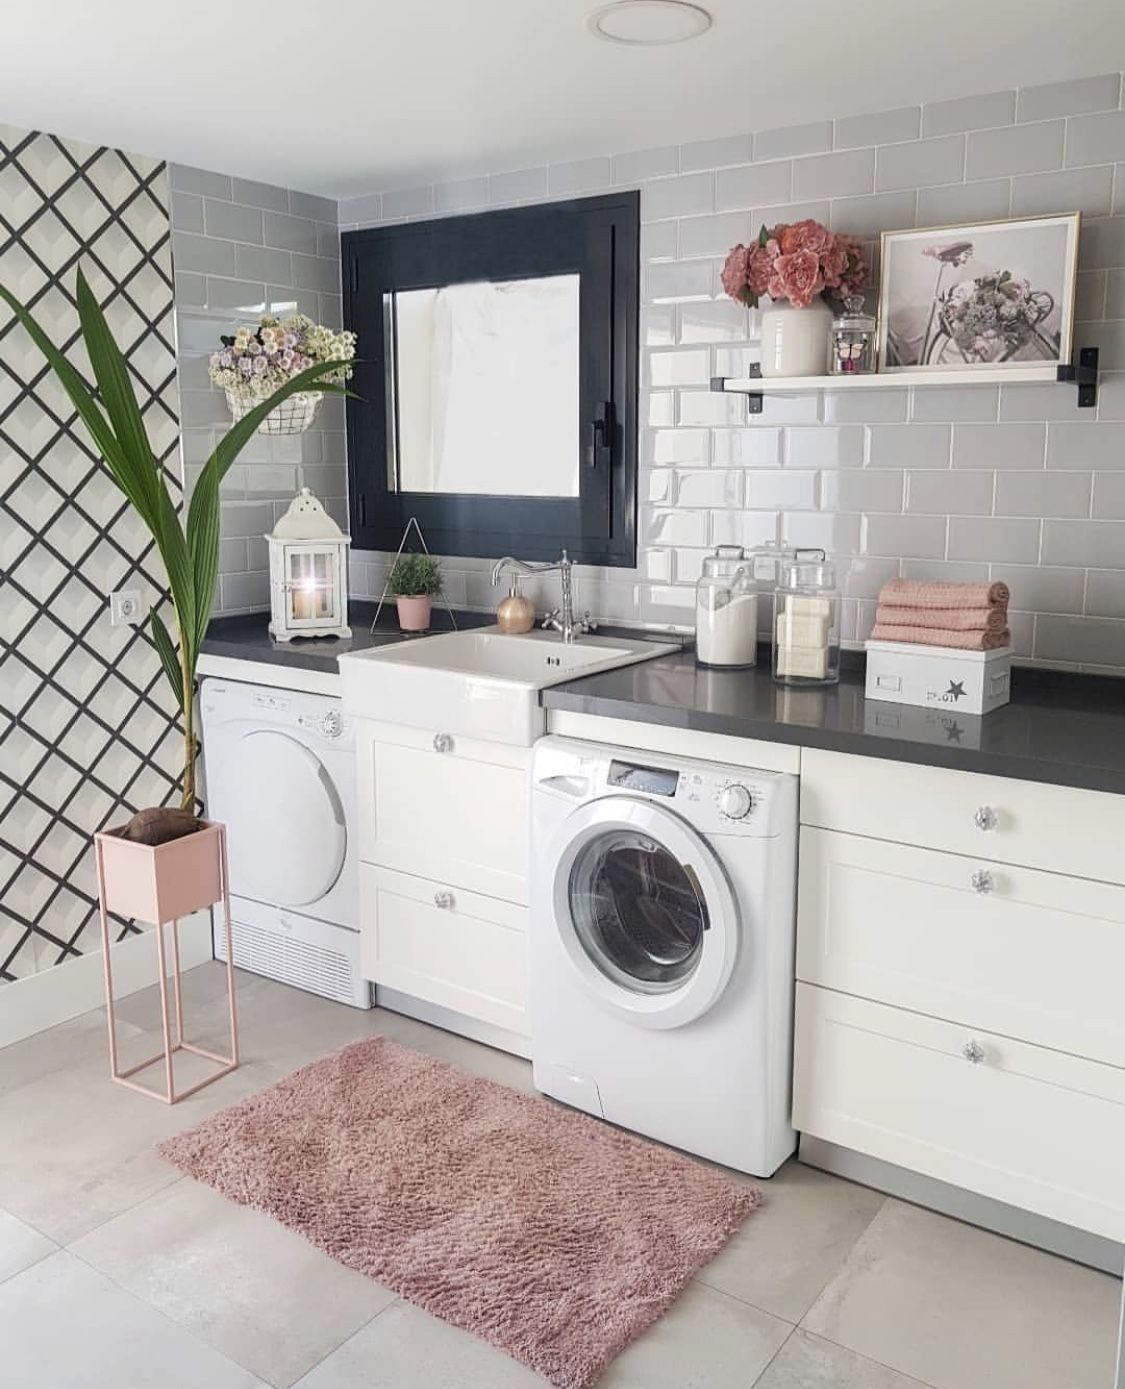 Pinterest Scottythoughts Laundry Room Inspiration Interior Wall Design Pink Laundry Rooms